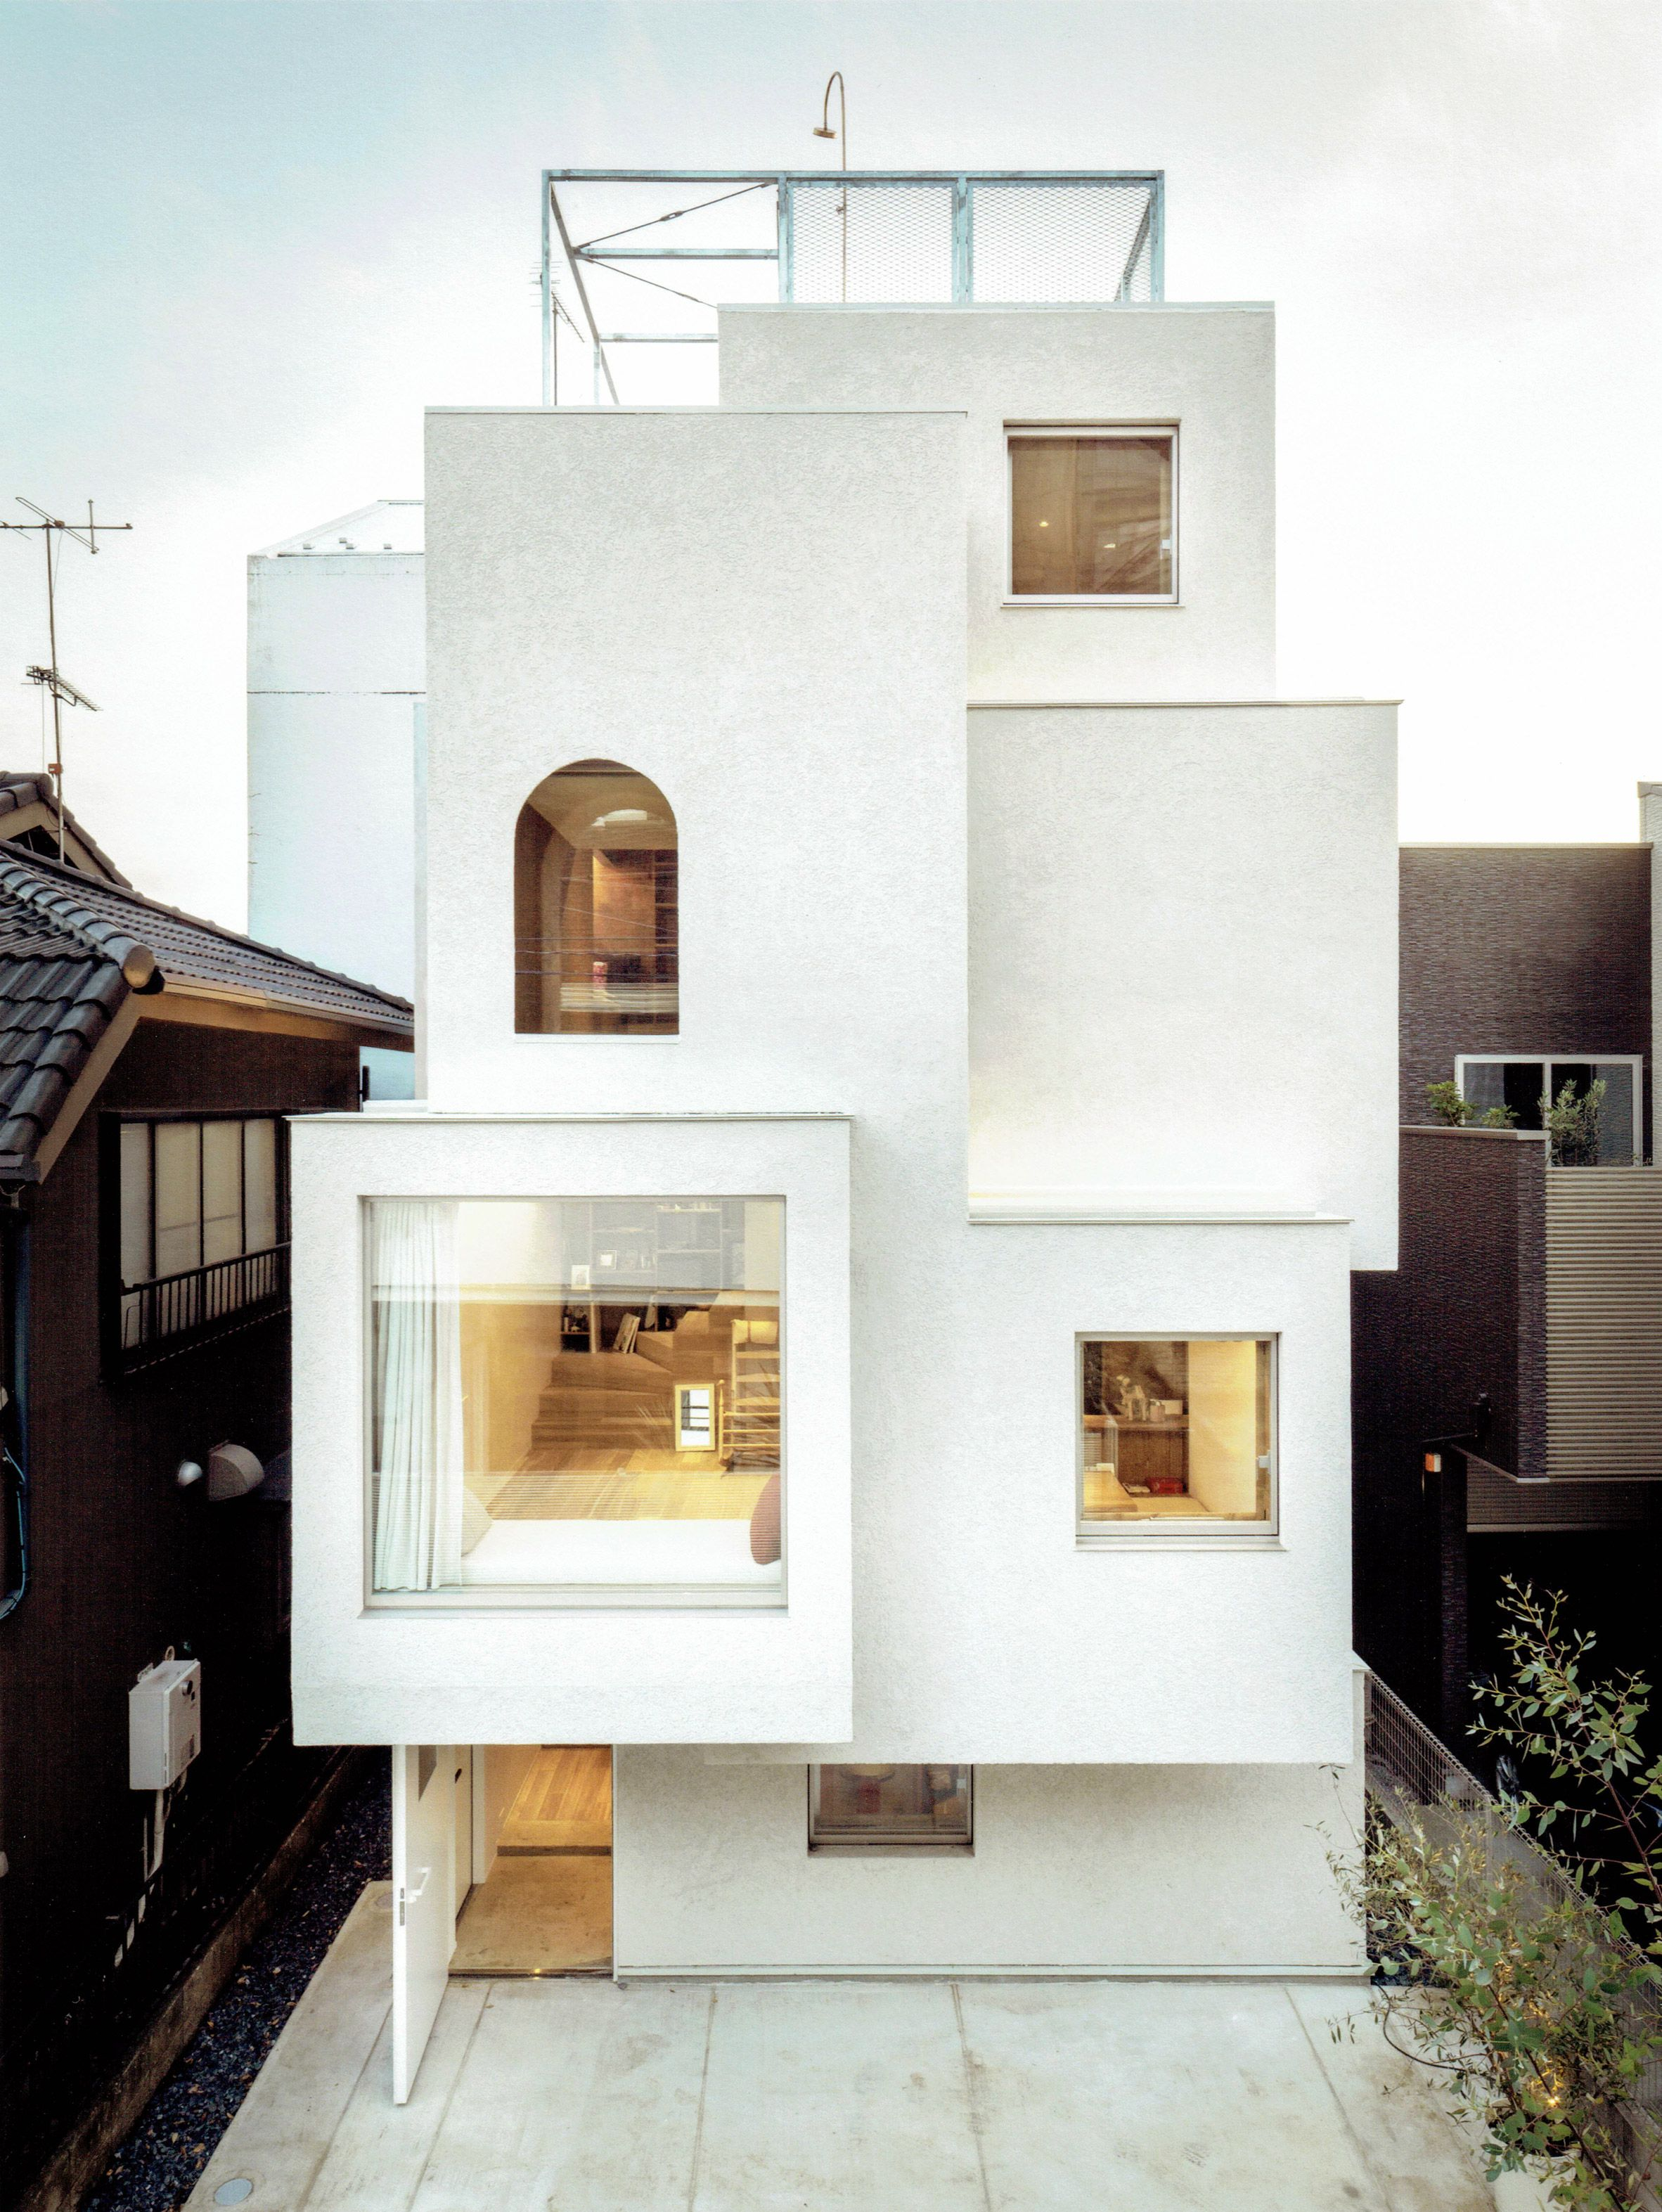 Tokyo home by Fujiilab comprises cluster of protruding white boxes ...